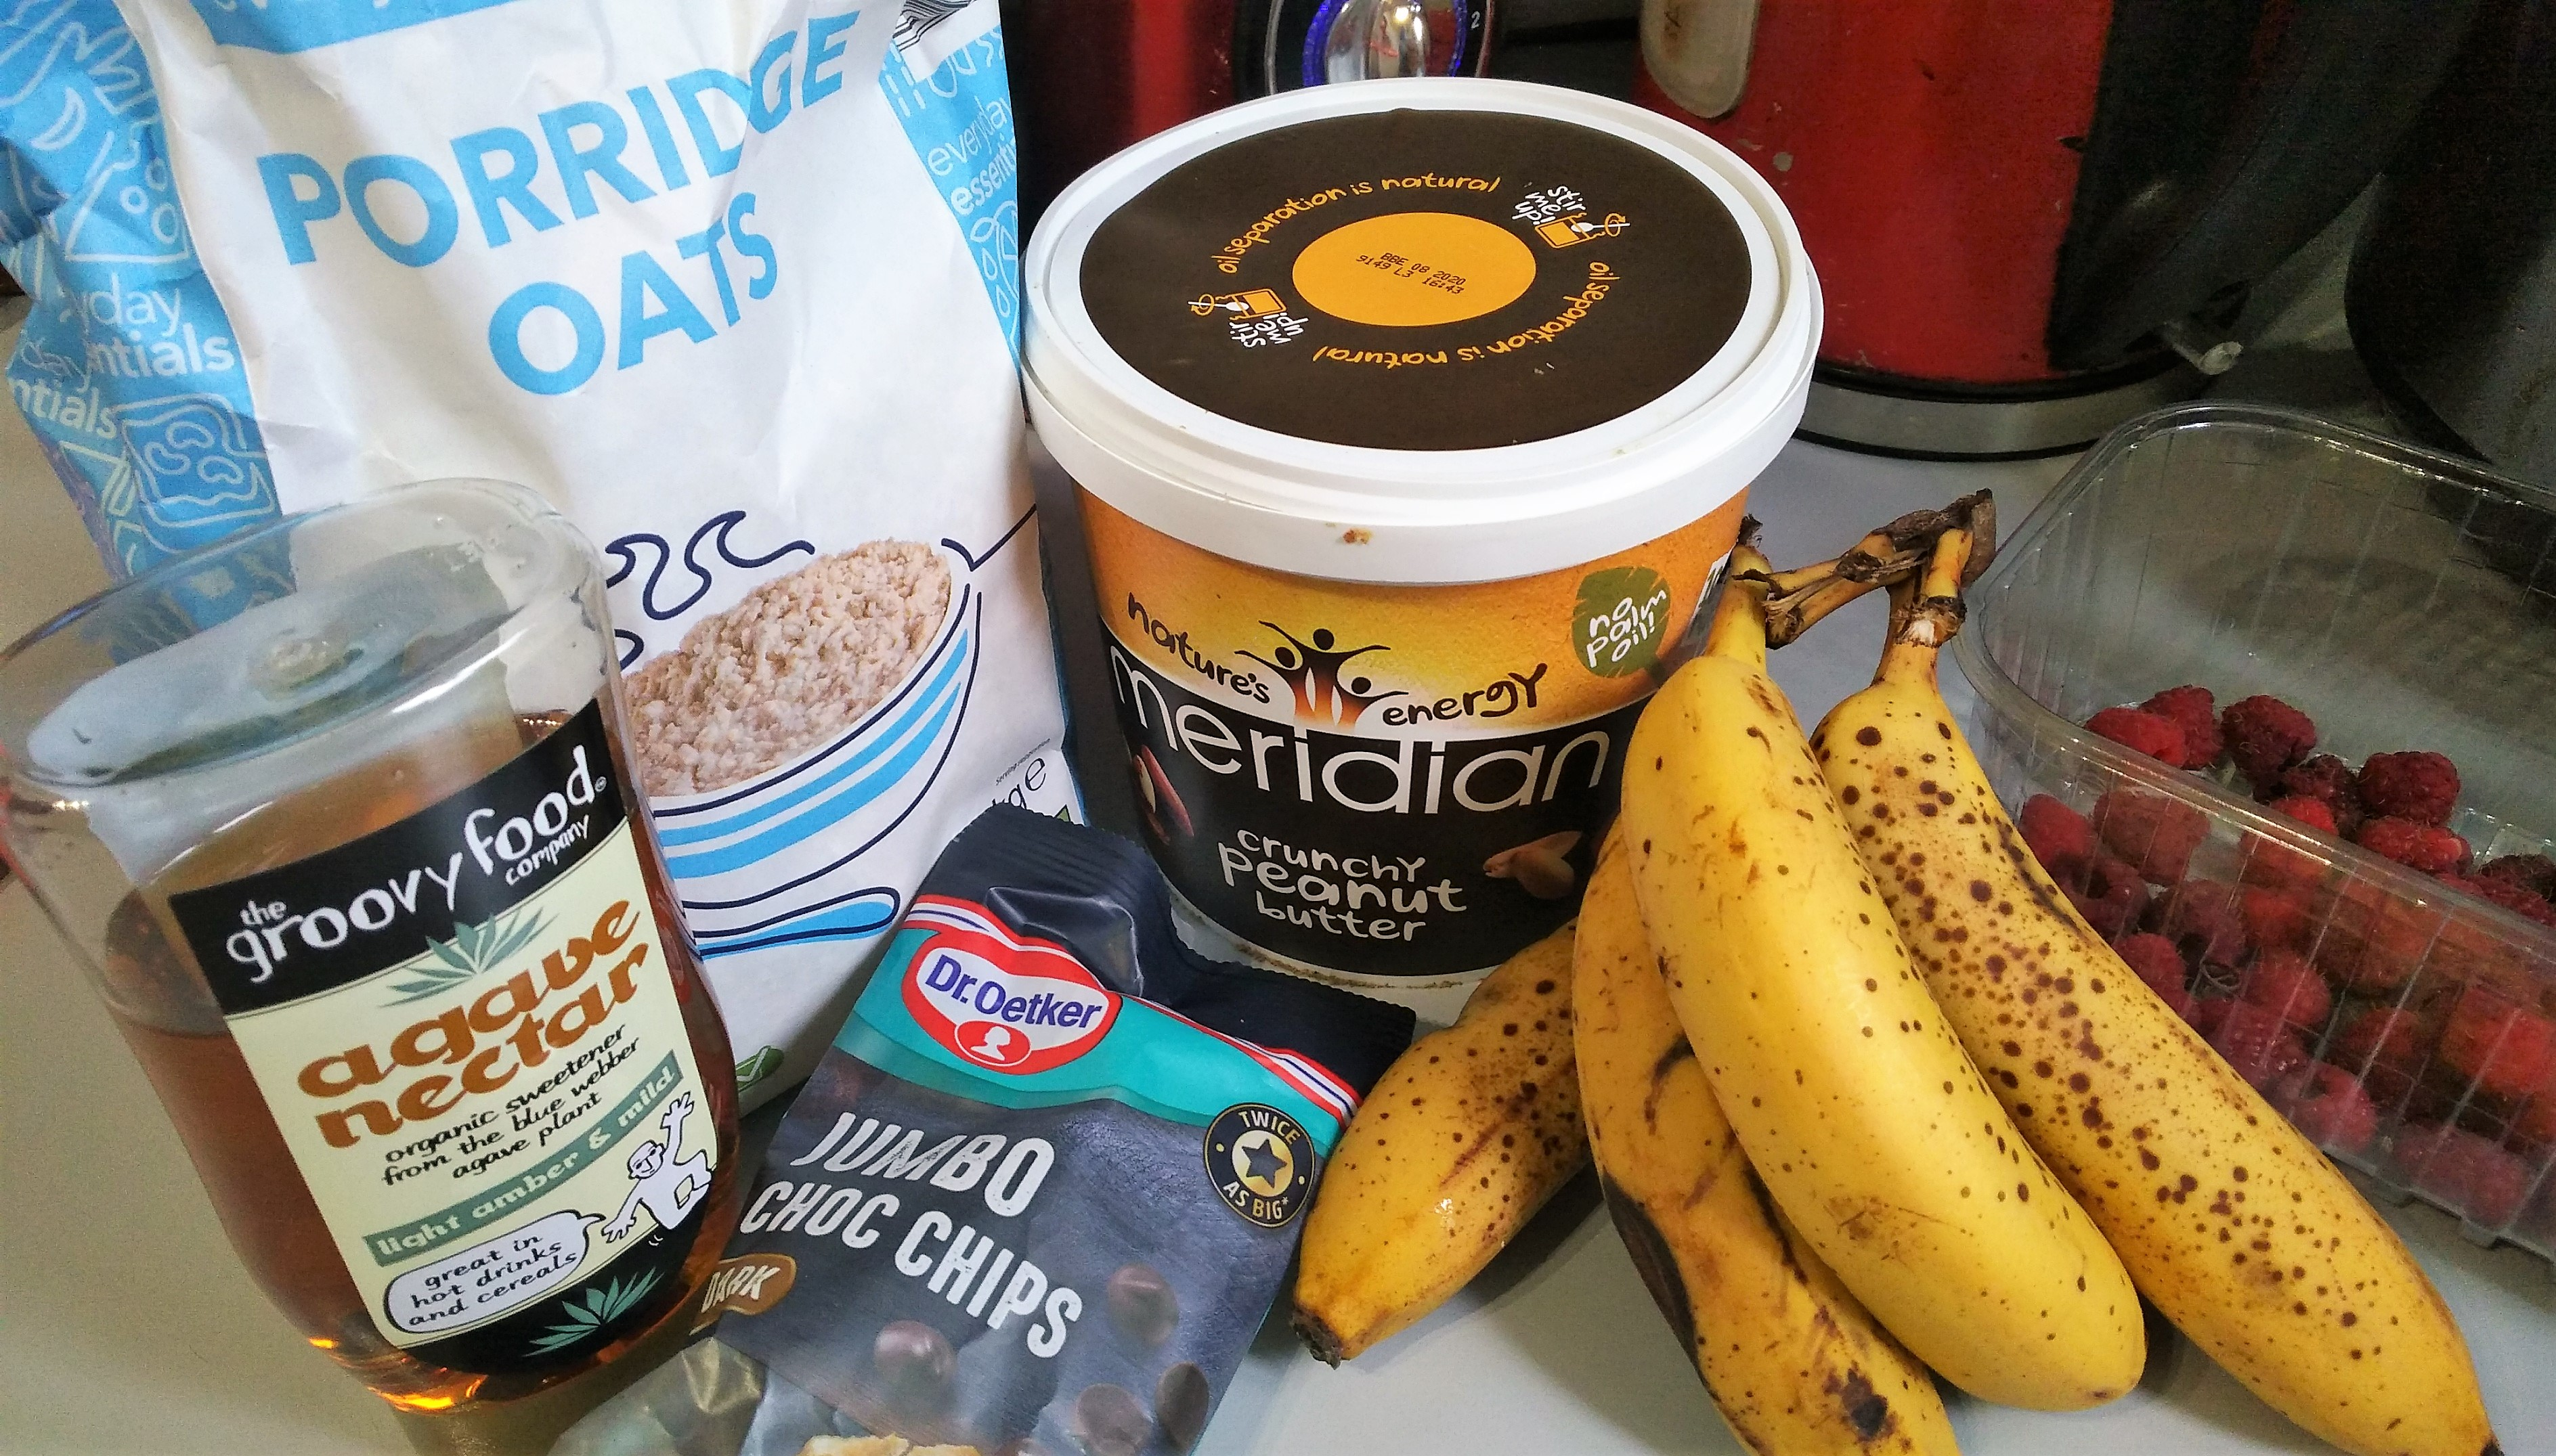 easy fruity breakfast bars ingredients - agave nectar, oats, crunchy peanut butter, choc chips, ripe bananas, fresh raspberries